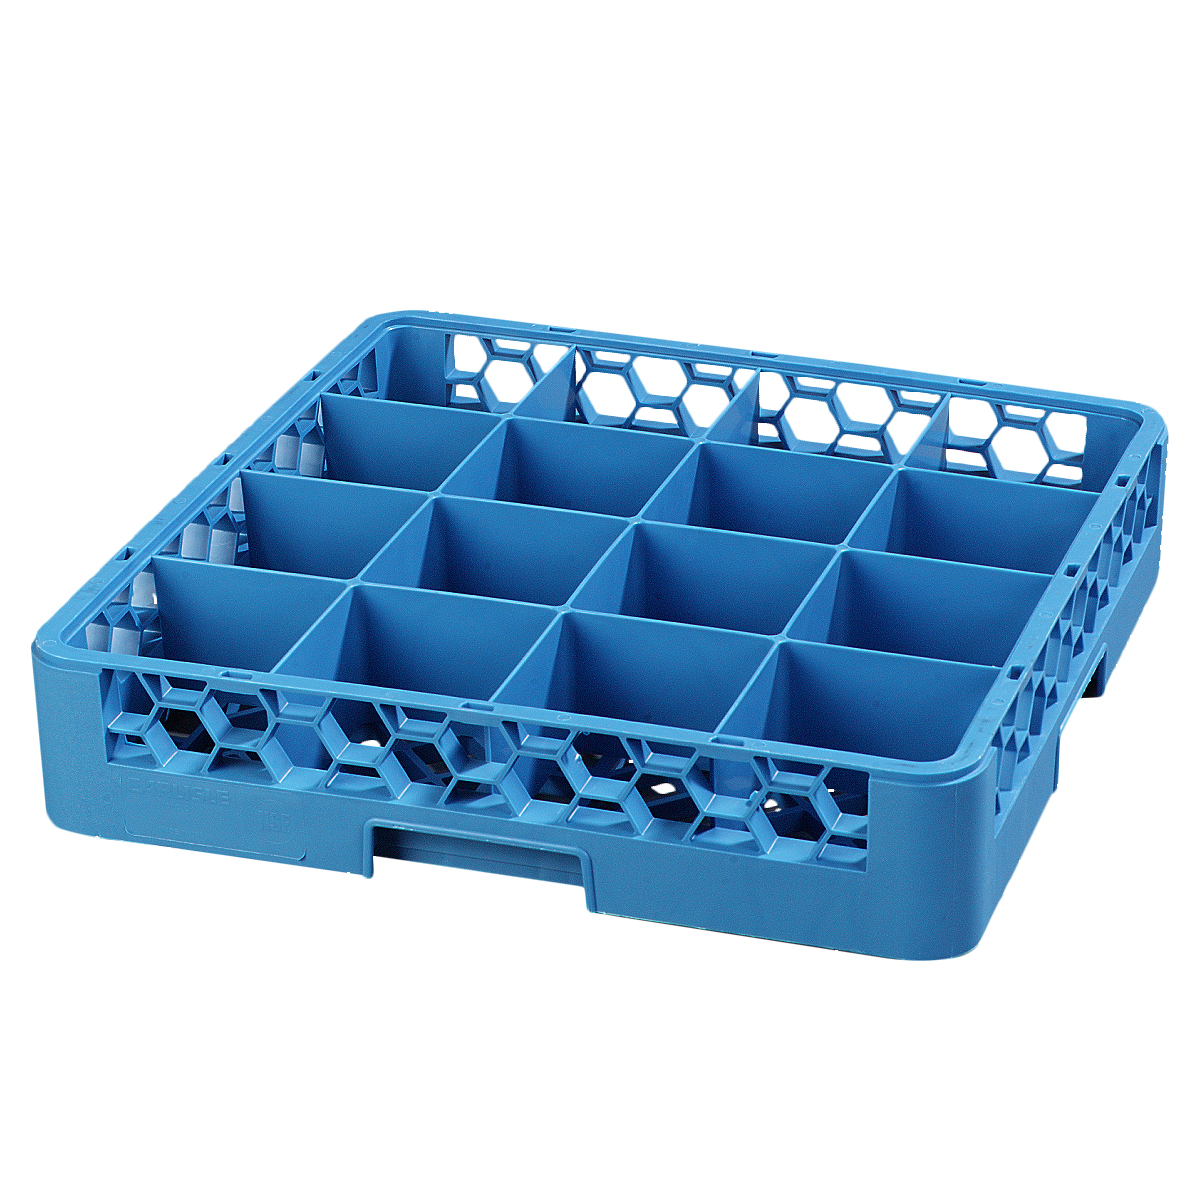 Carlisle RC1614 dishwasher rack, cup compartment